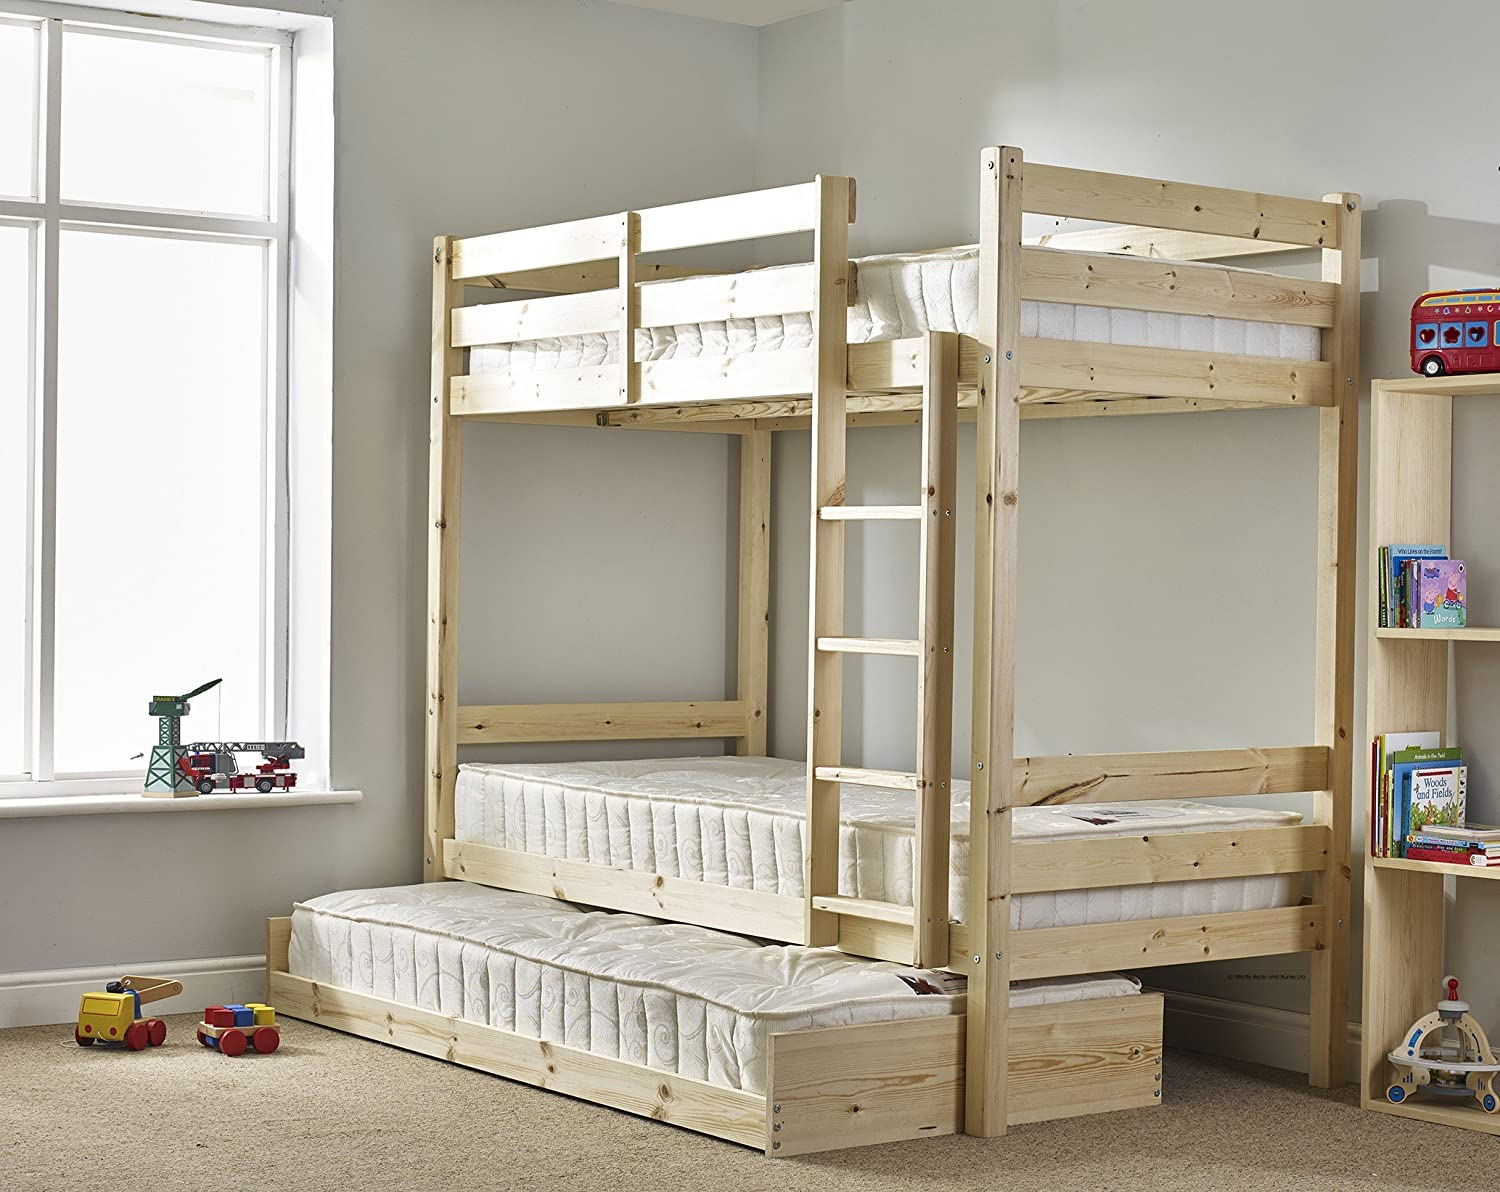 Bunk Bed With Guest Bed   3ft Single Bunkbed With Pull Out Trundle   FAST  DELIVERY: Amazon.co.uk: Kitchen U0026 Home